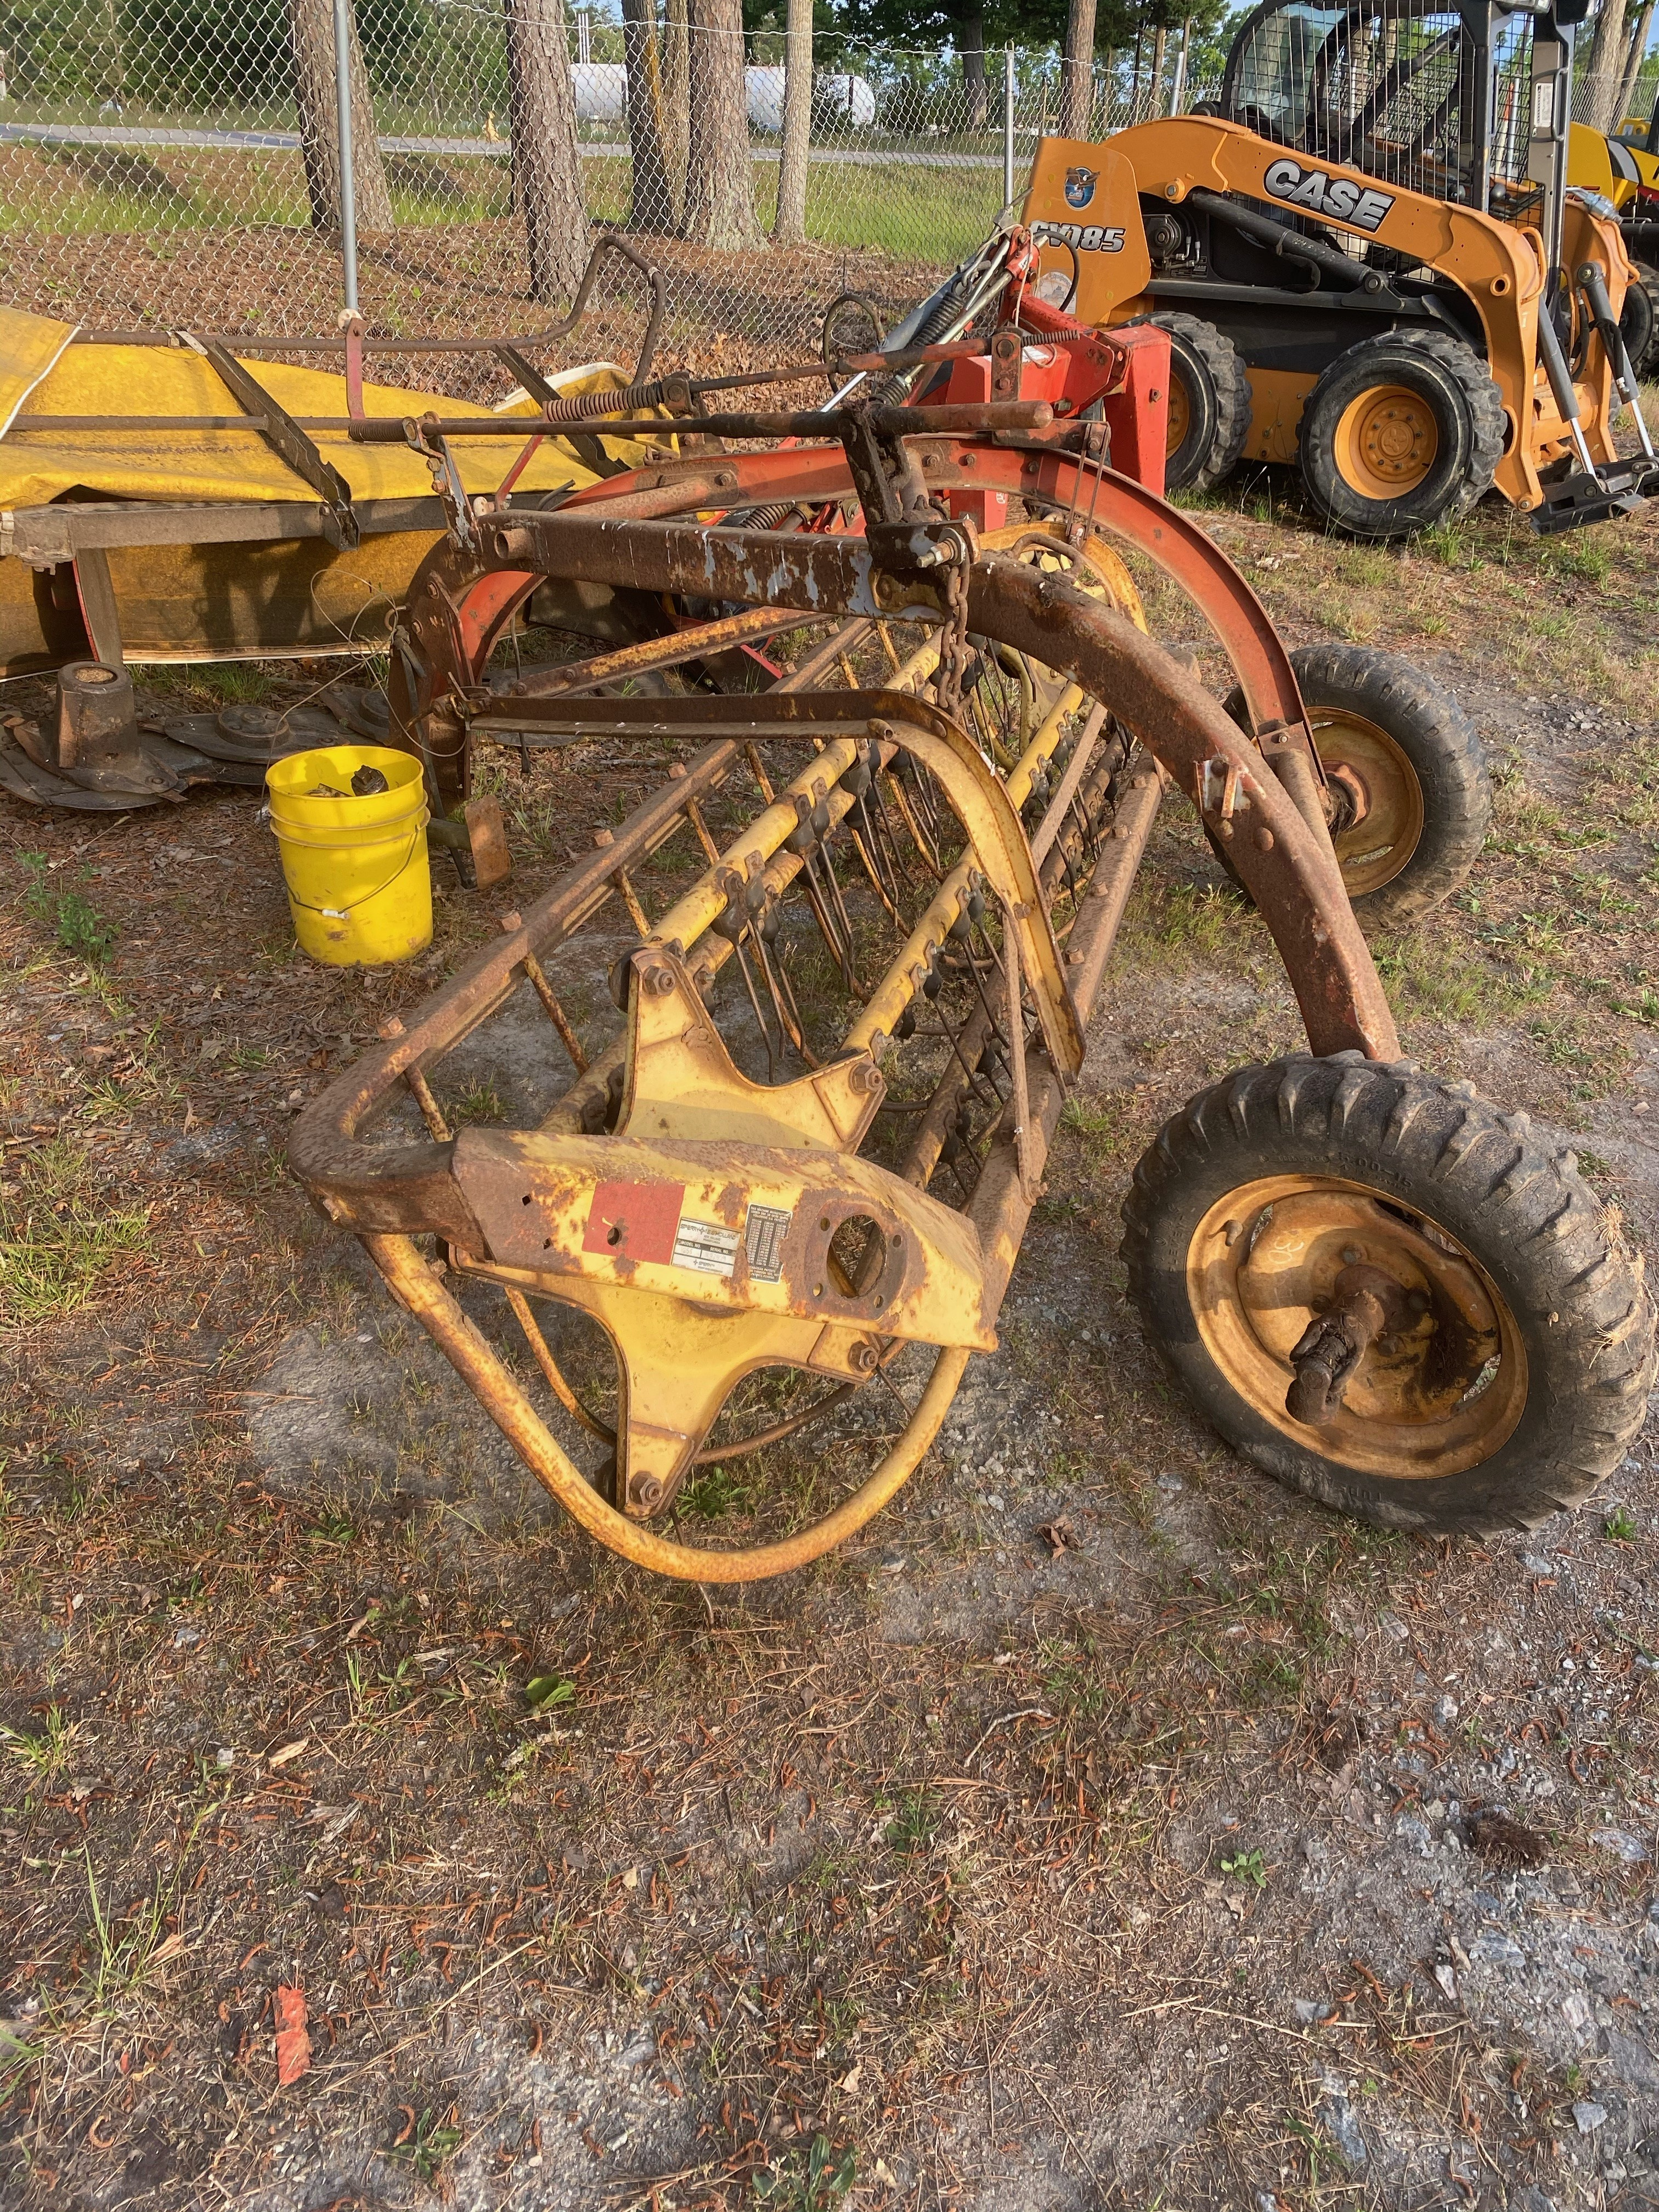 Used, 2021, New Holland Agriculture, 256 (Rolabar® Rakes), Lawn Mowers